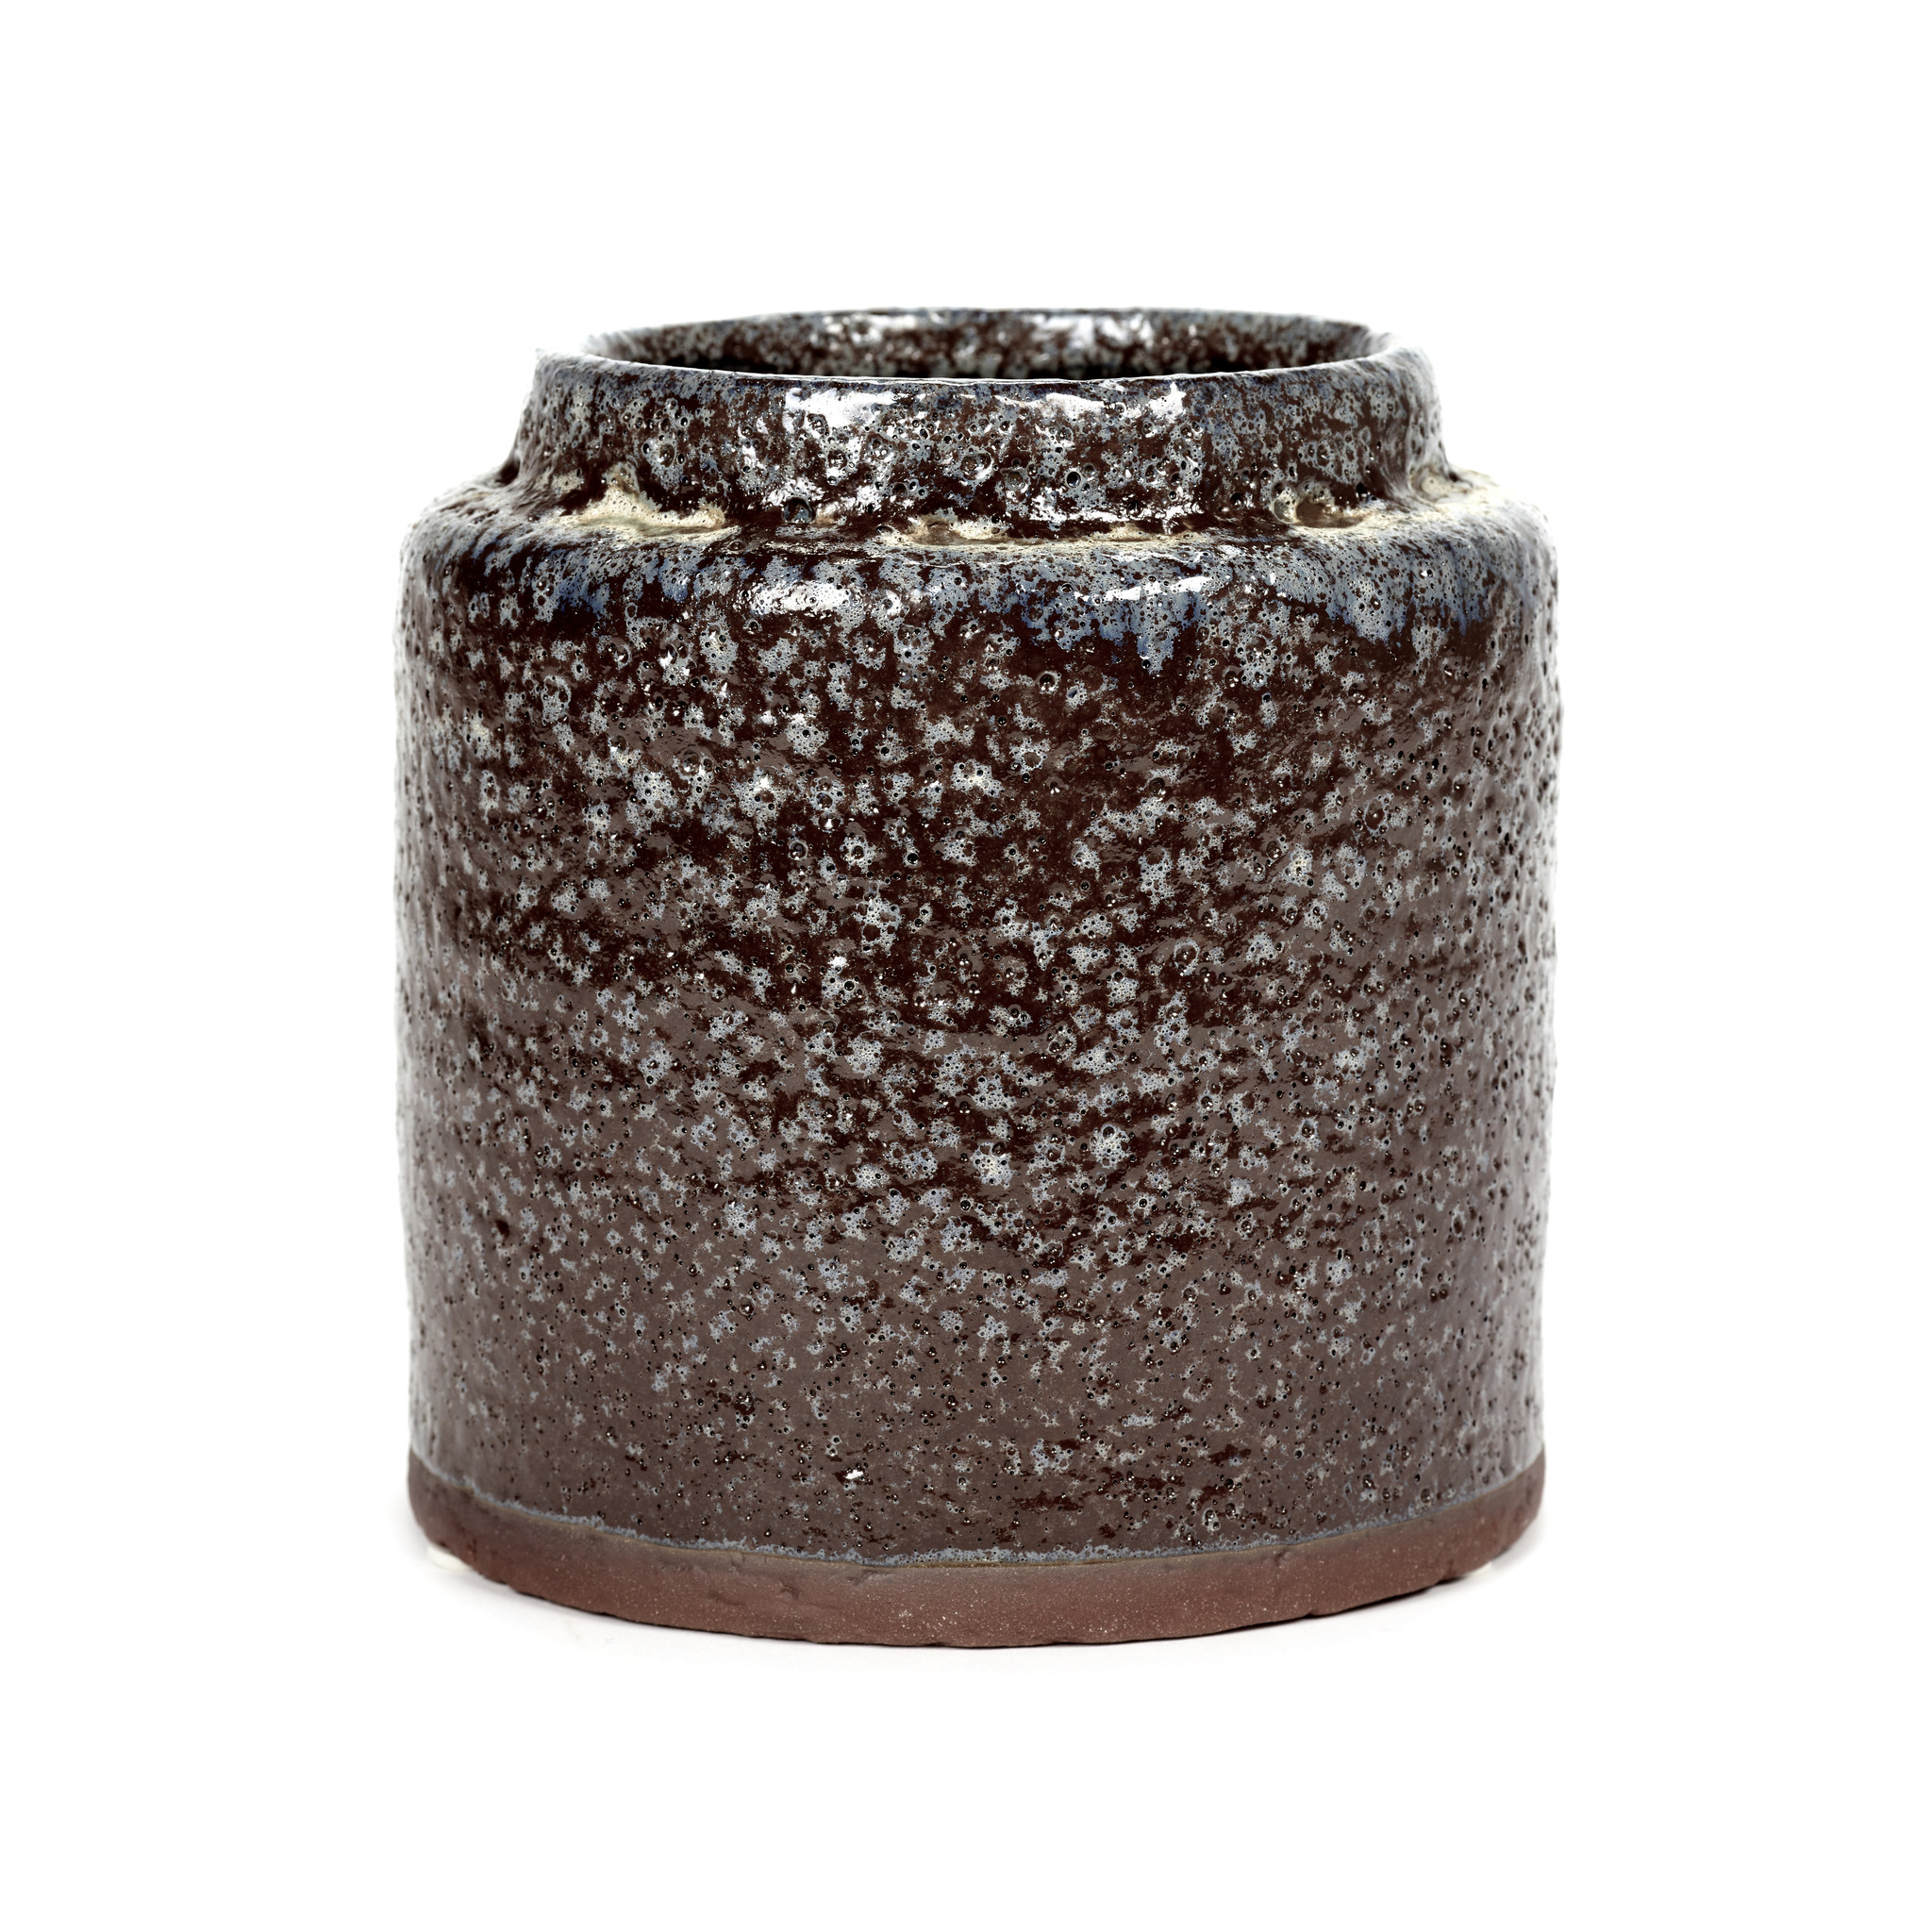 Brown ceramic retro design planter